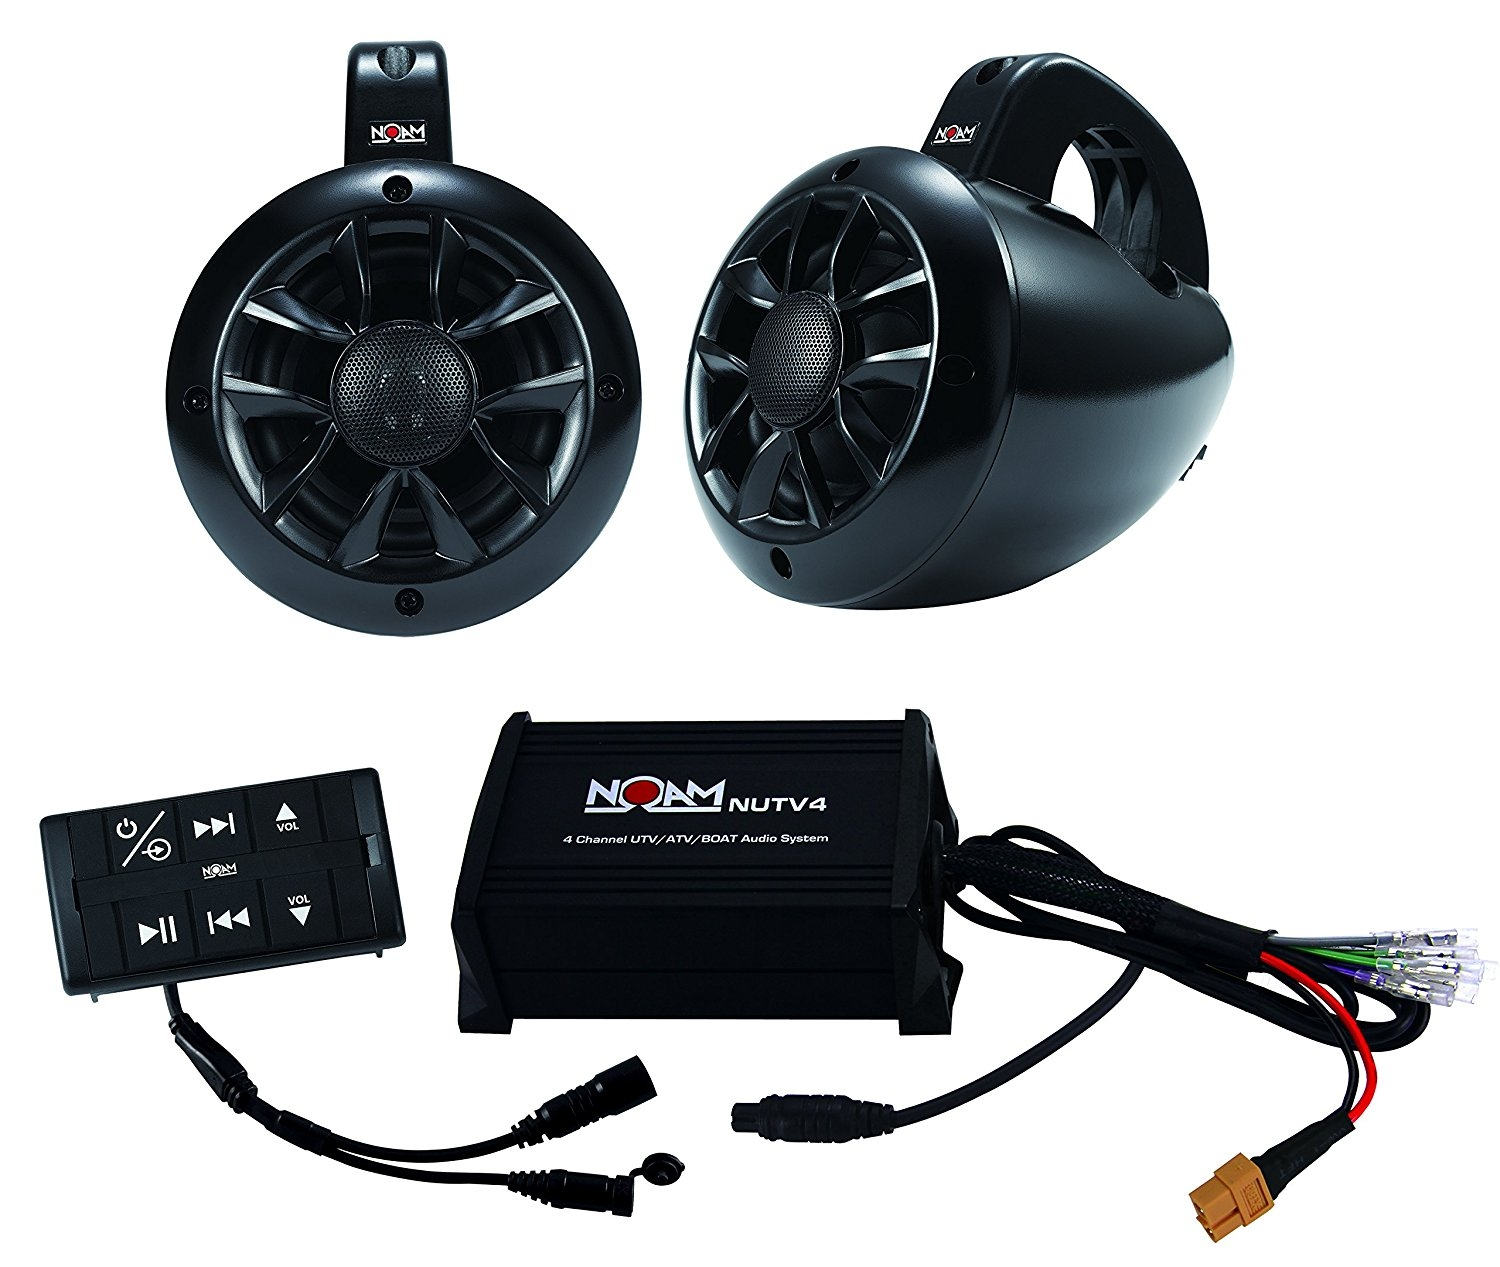 NOAM NUTV4 - Marine Bluetooth ATV / Golf Cart / UTV Speakers Stereo System